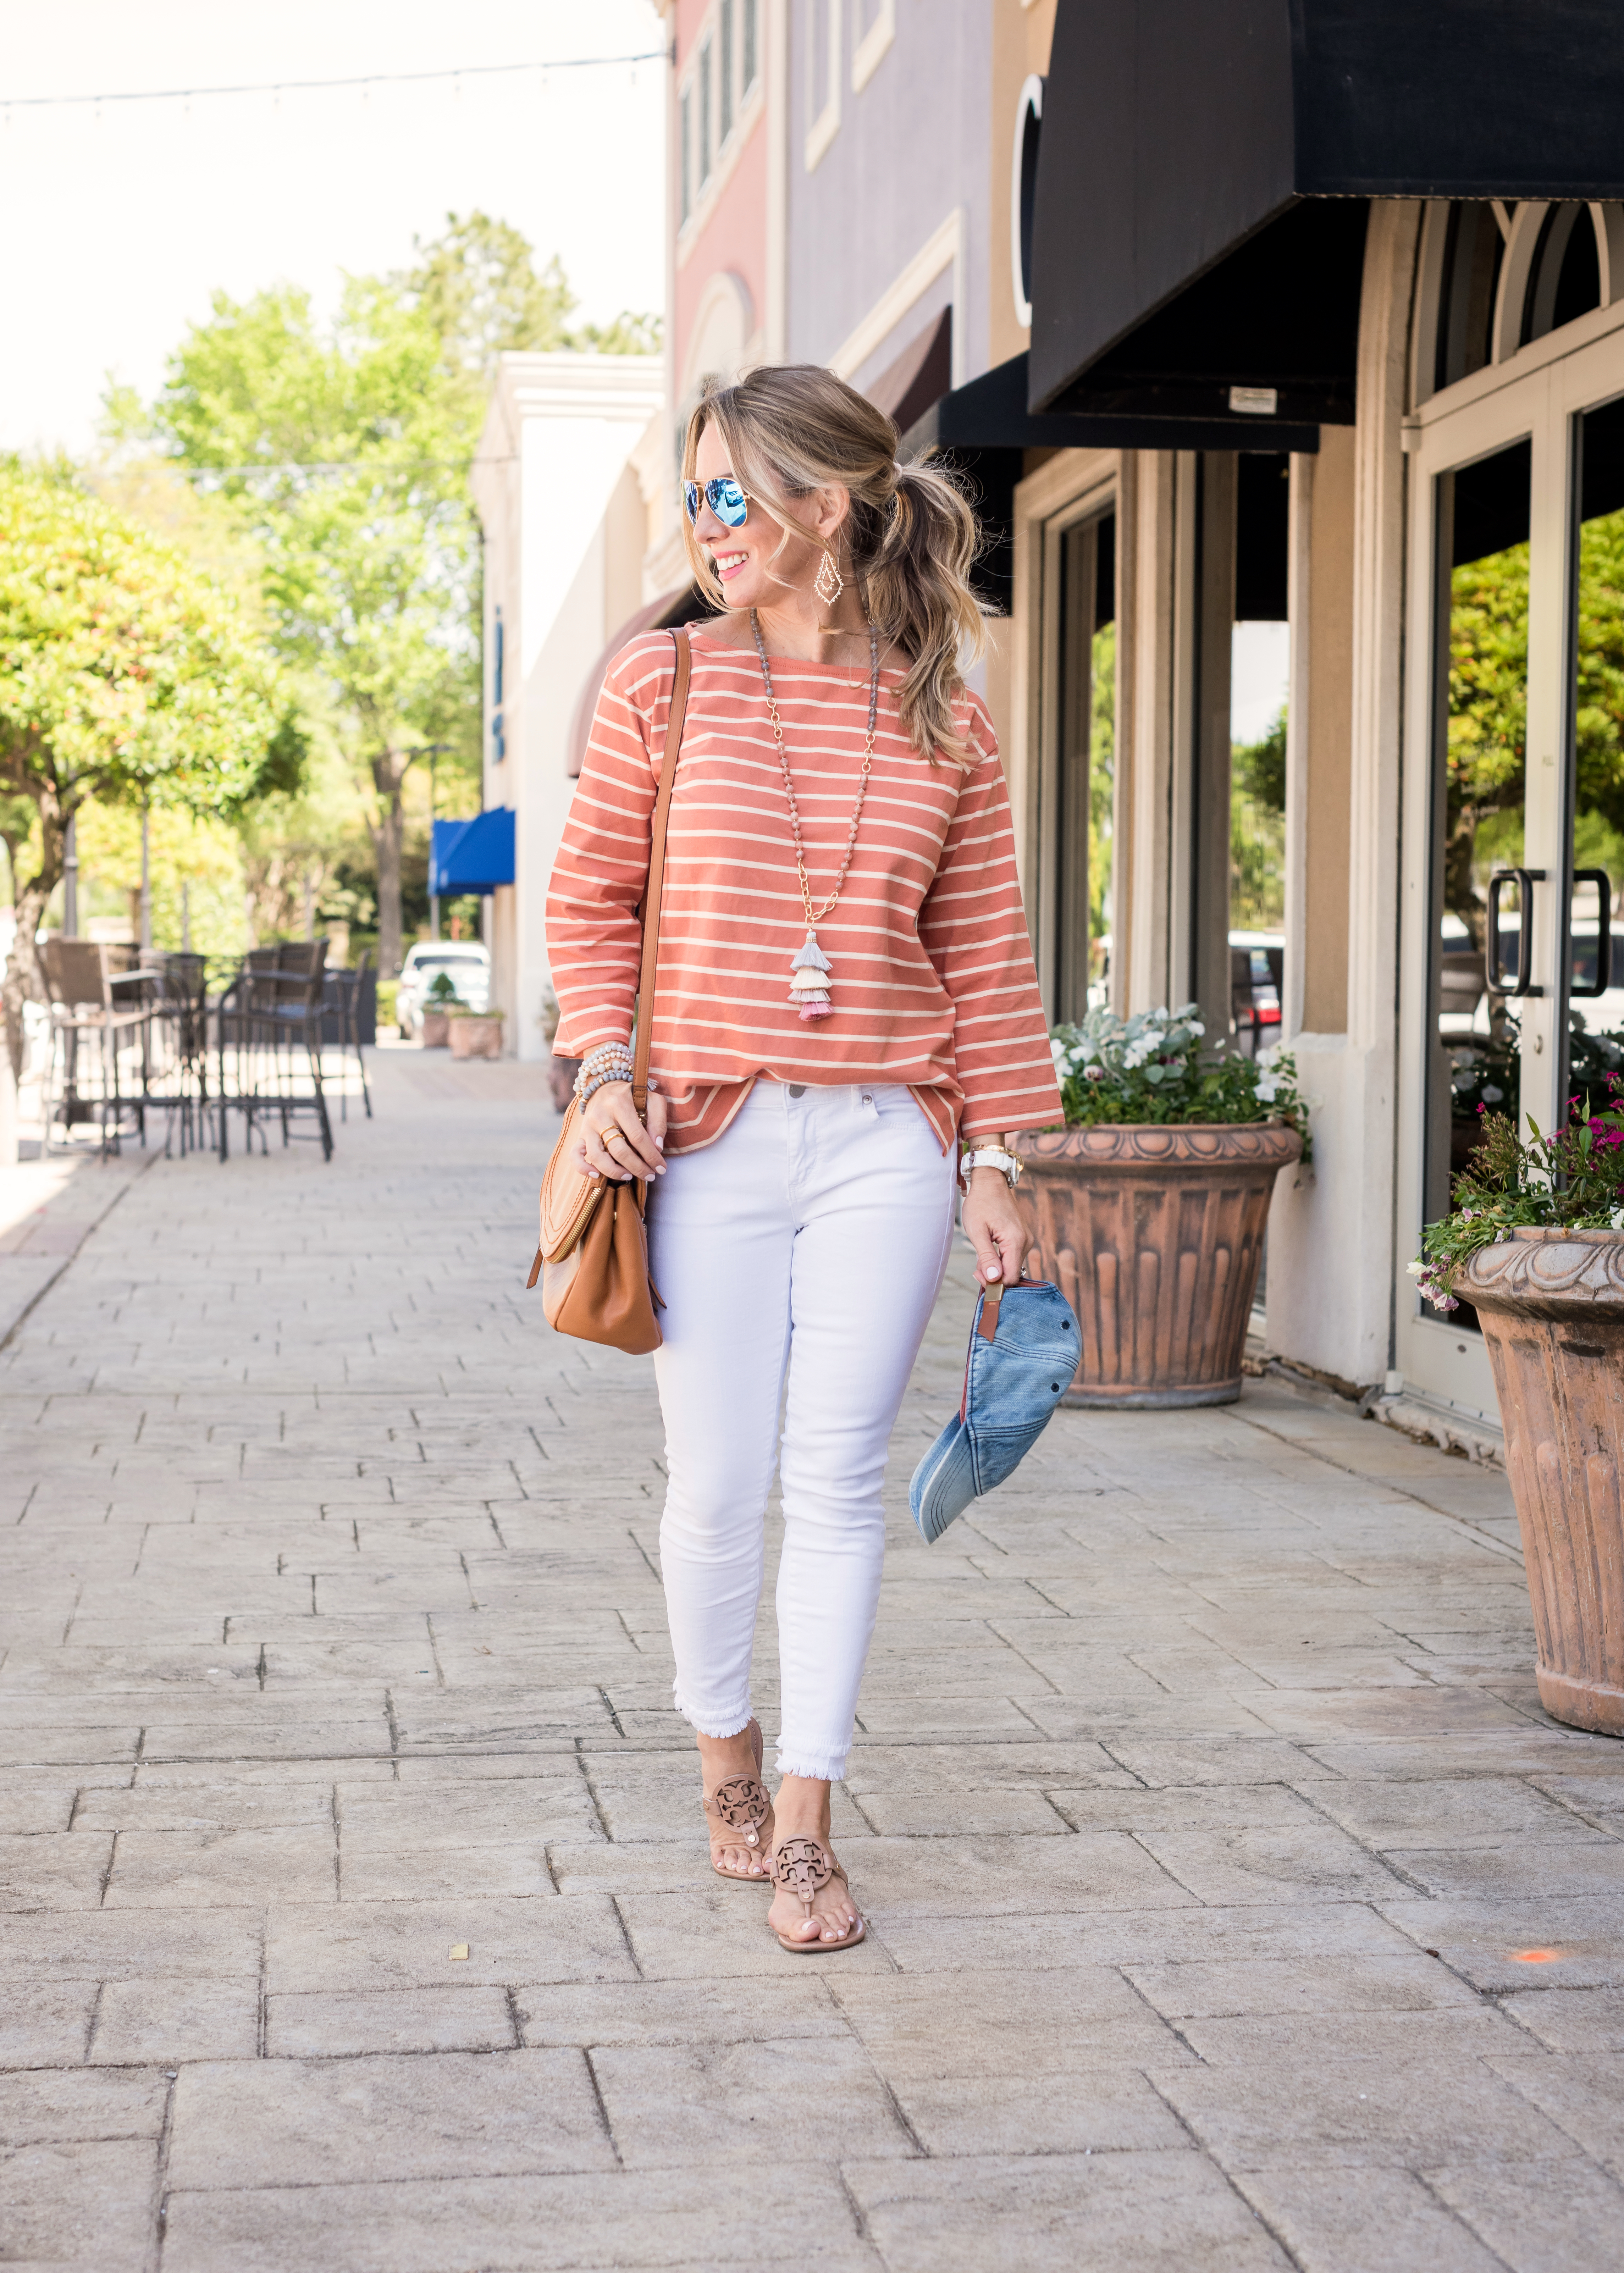 Weekend Outfit with white jeans and striped top 3